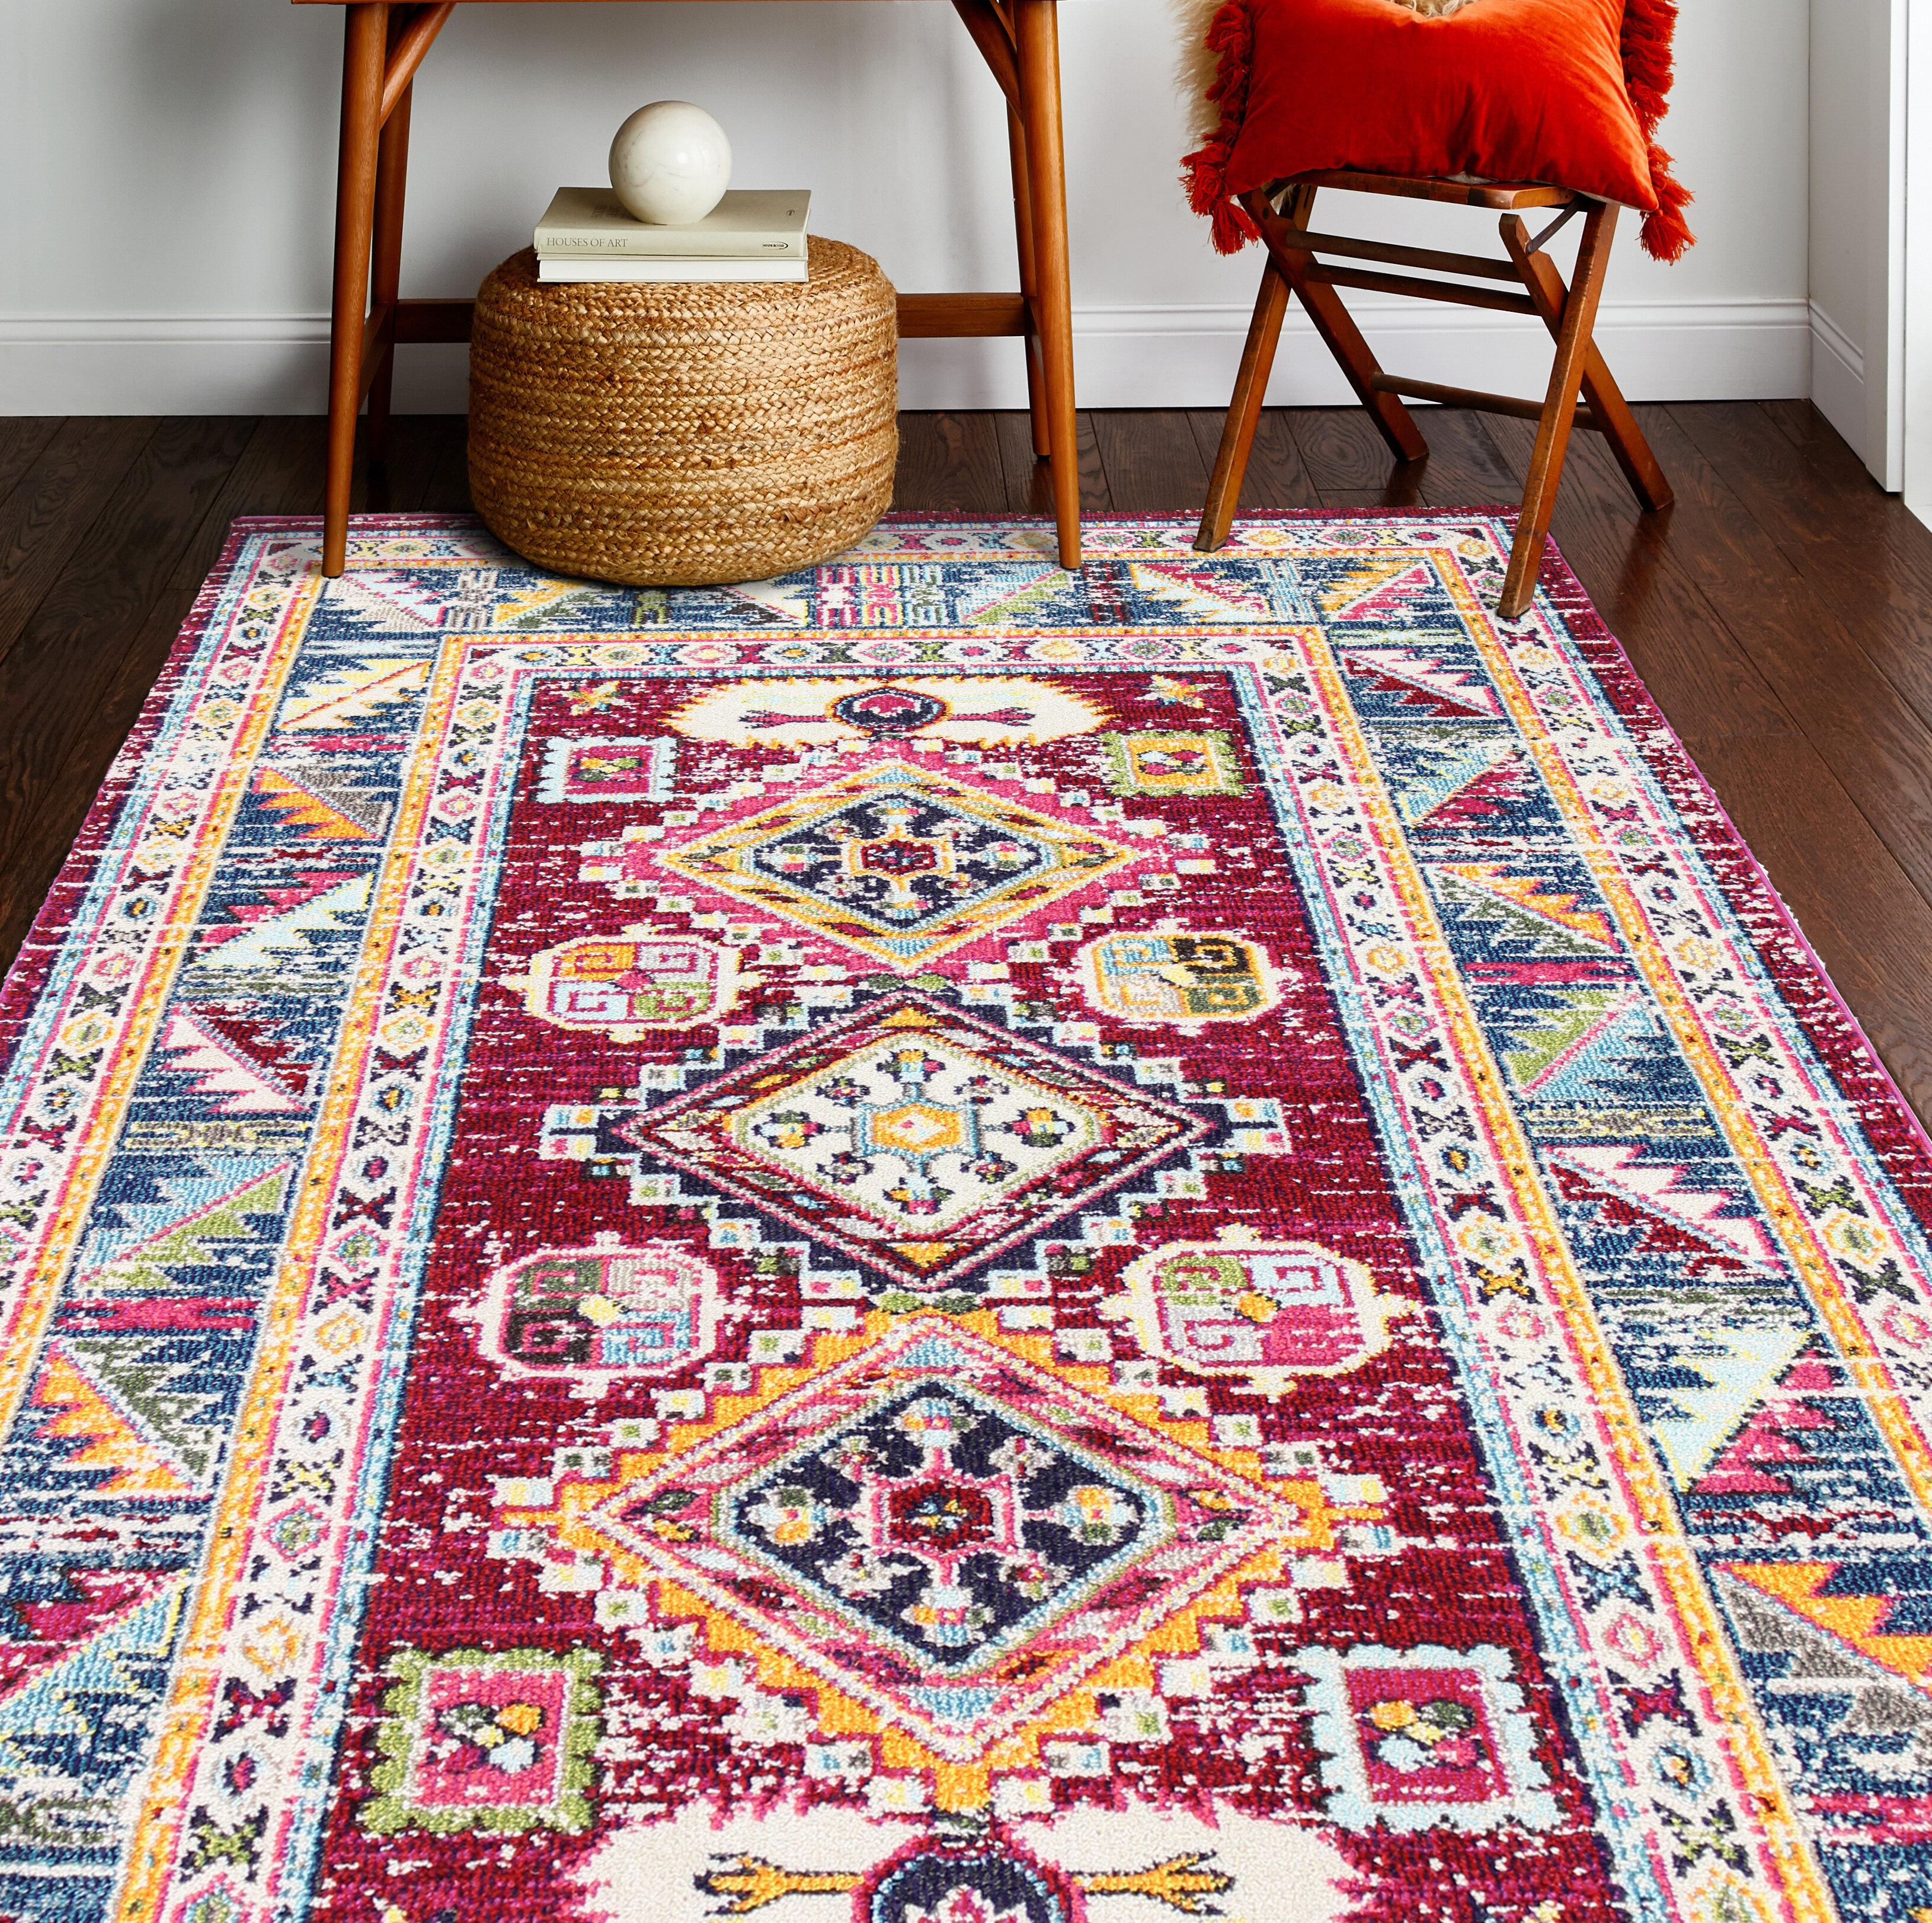 Showcasing An Array Of Vibrant Colors In Pixelated Hues This Casually Modern Rug Is Eye Catching Foundation To Your Stylish E The Saturated